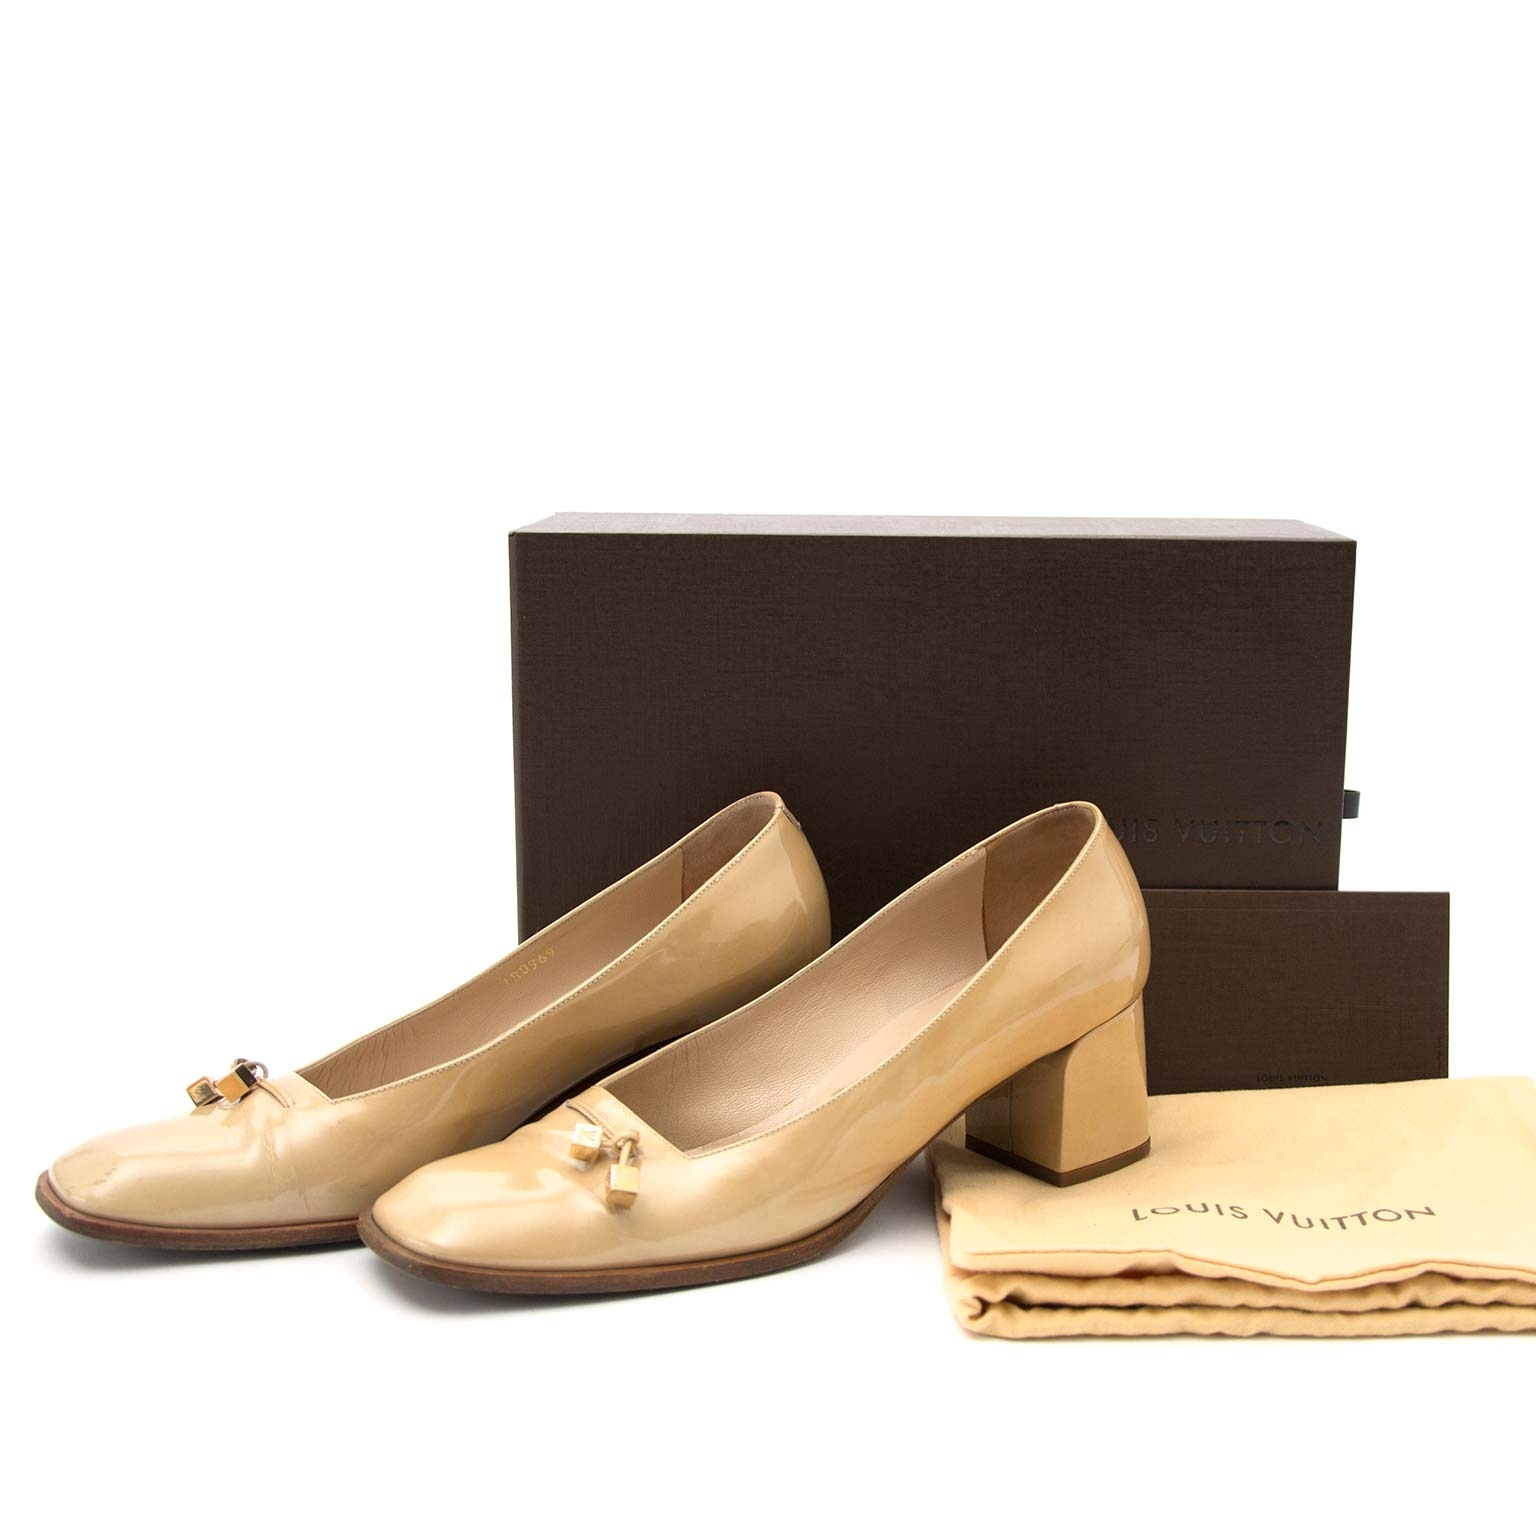 Louis Vuitton Beige Vernis Low Block Heel Pump - Size 39 Buy authentic designer Louis Vuitton secondhand shoes pumps at Labellov at the best price. Safe and secure shopping. Koop tweedehands authentieke LV schoenen bij designer webwinkel labellov.